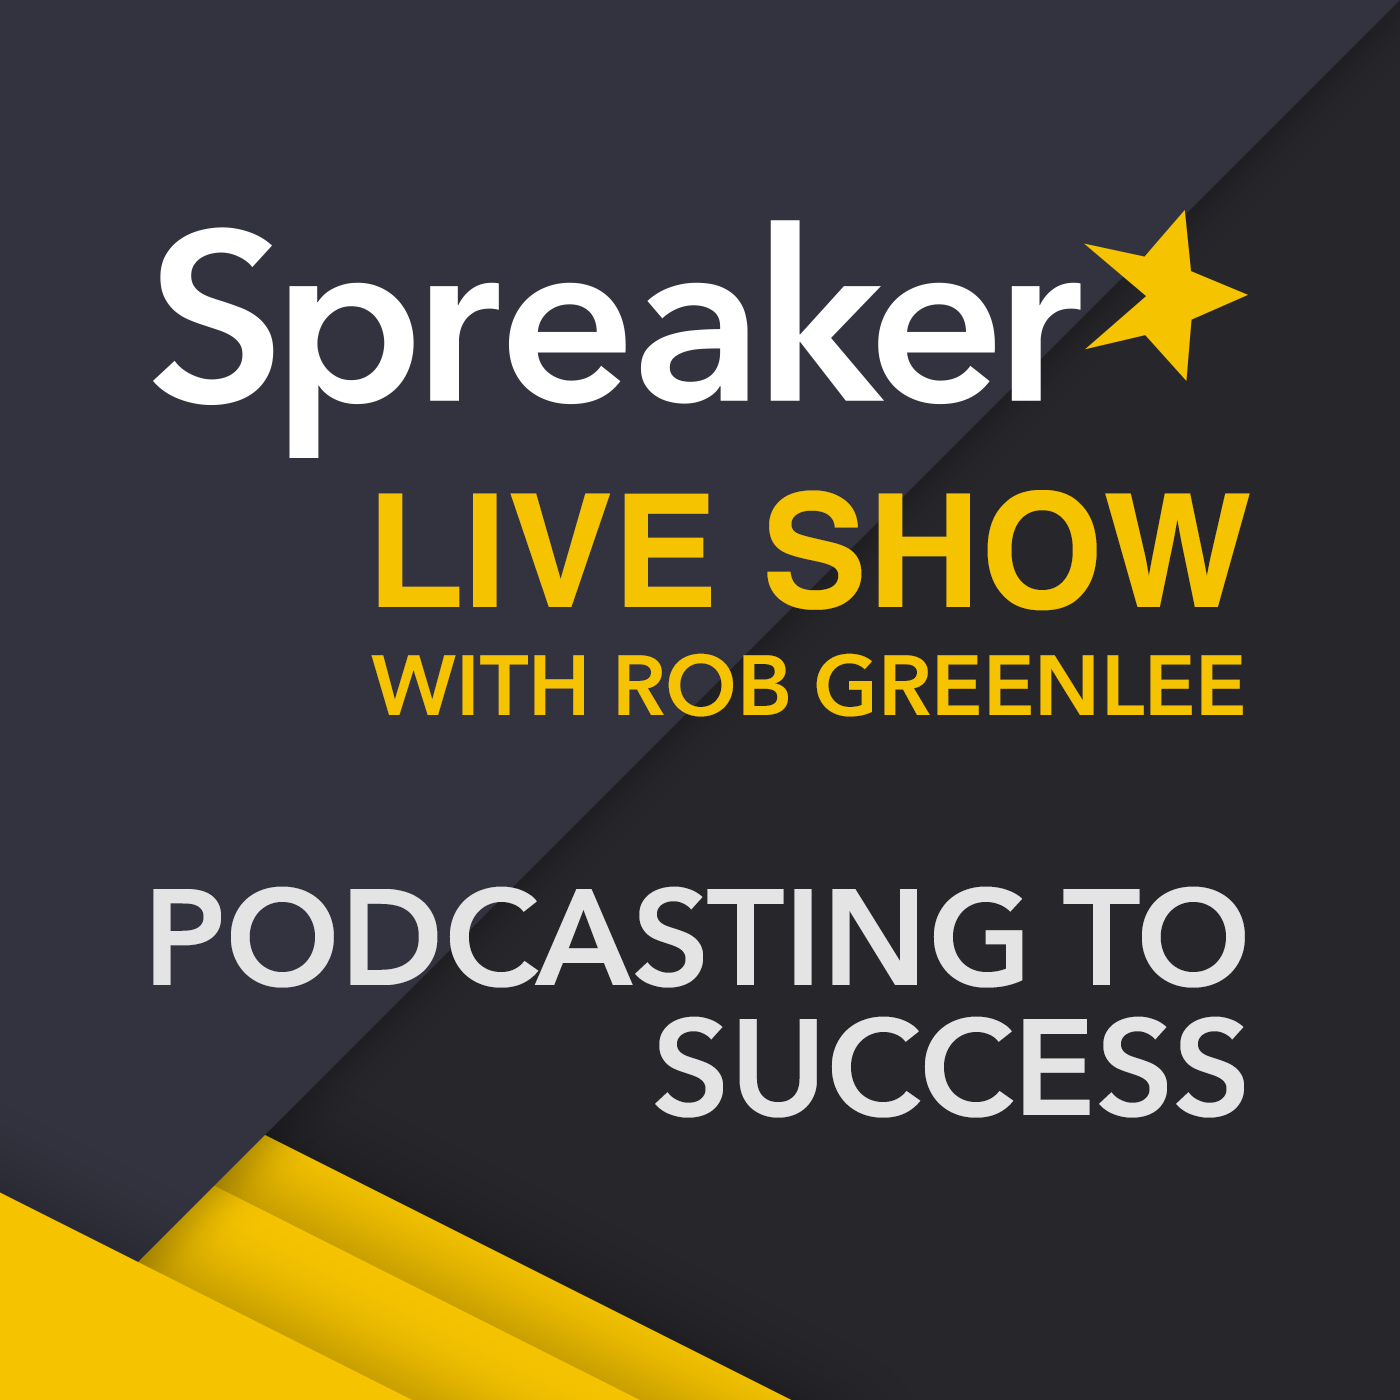 Spreaker Live Show with Rob Greenlee